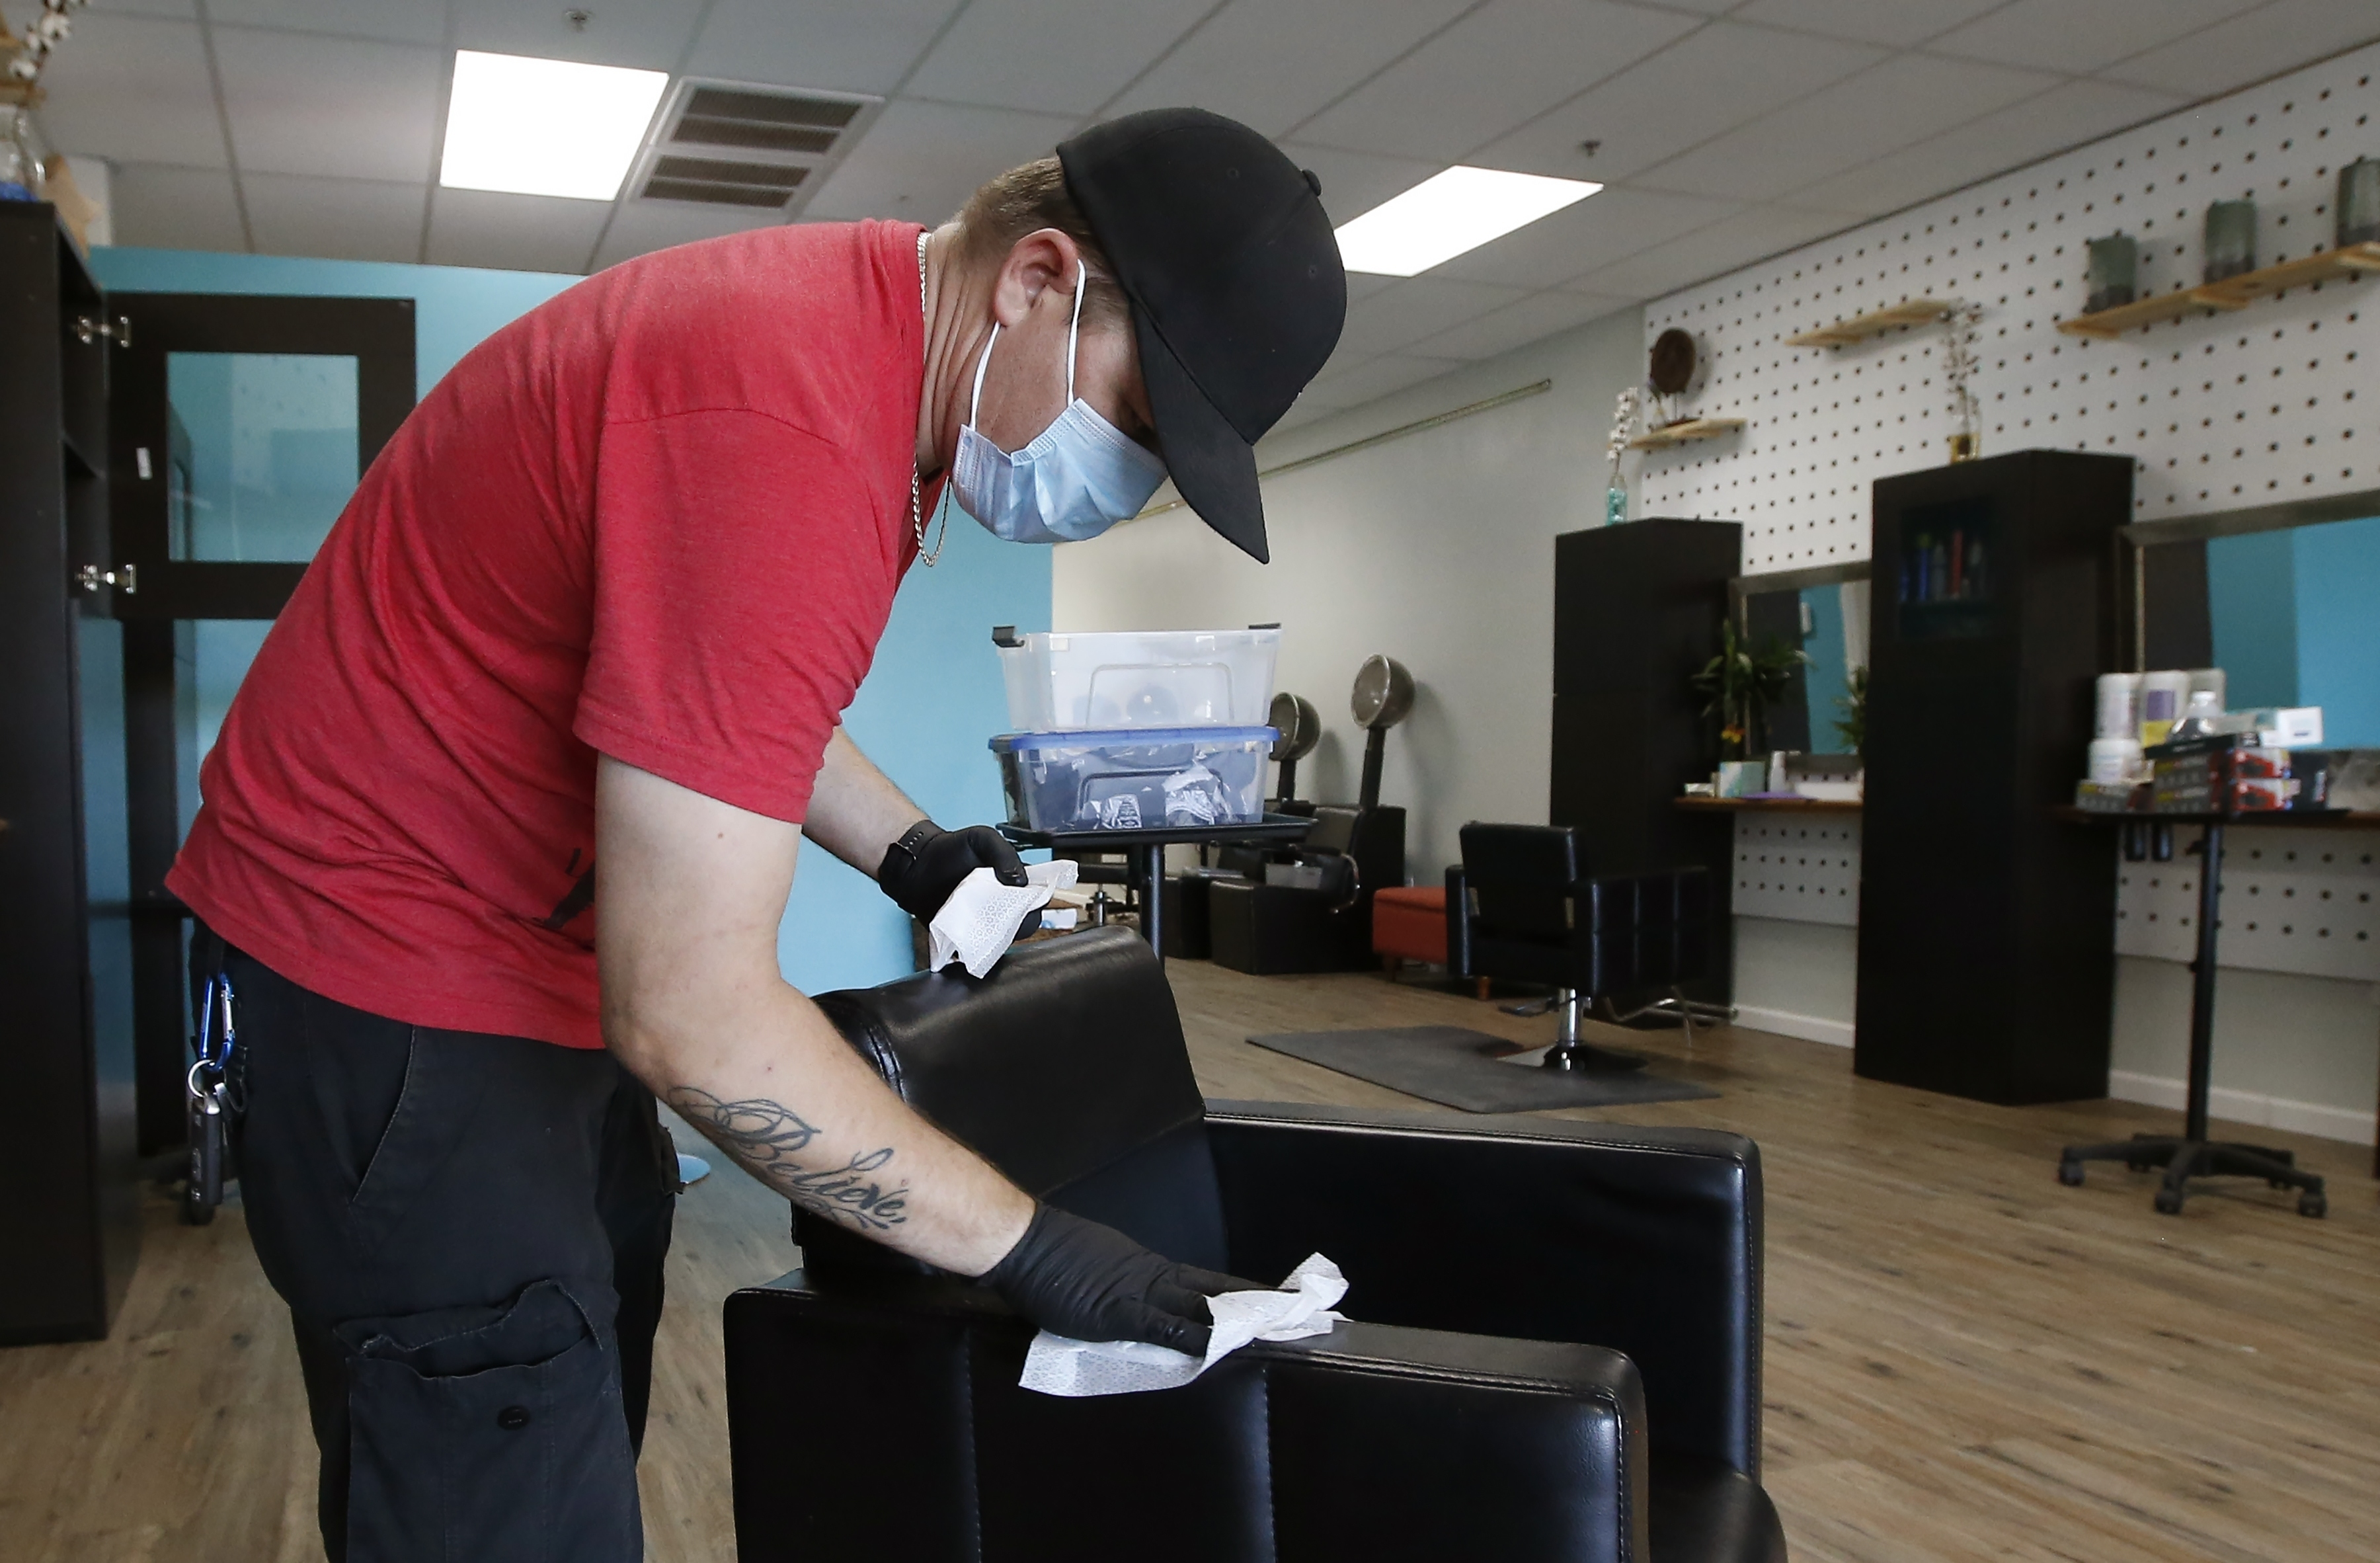 Brian Waldret, co-owner of Hello Salon in Laveen, Arizona, disinfects surfaces in the salon on May 7, in preparation for reopening after being closed for several weeks due to the coronavirus.